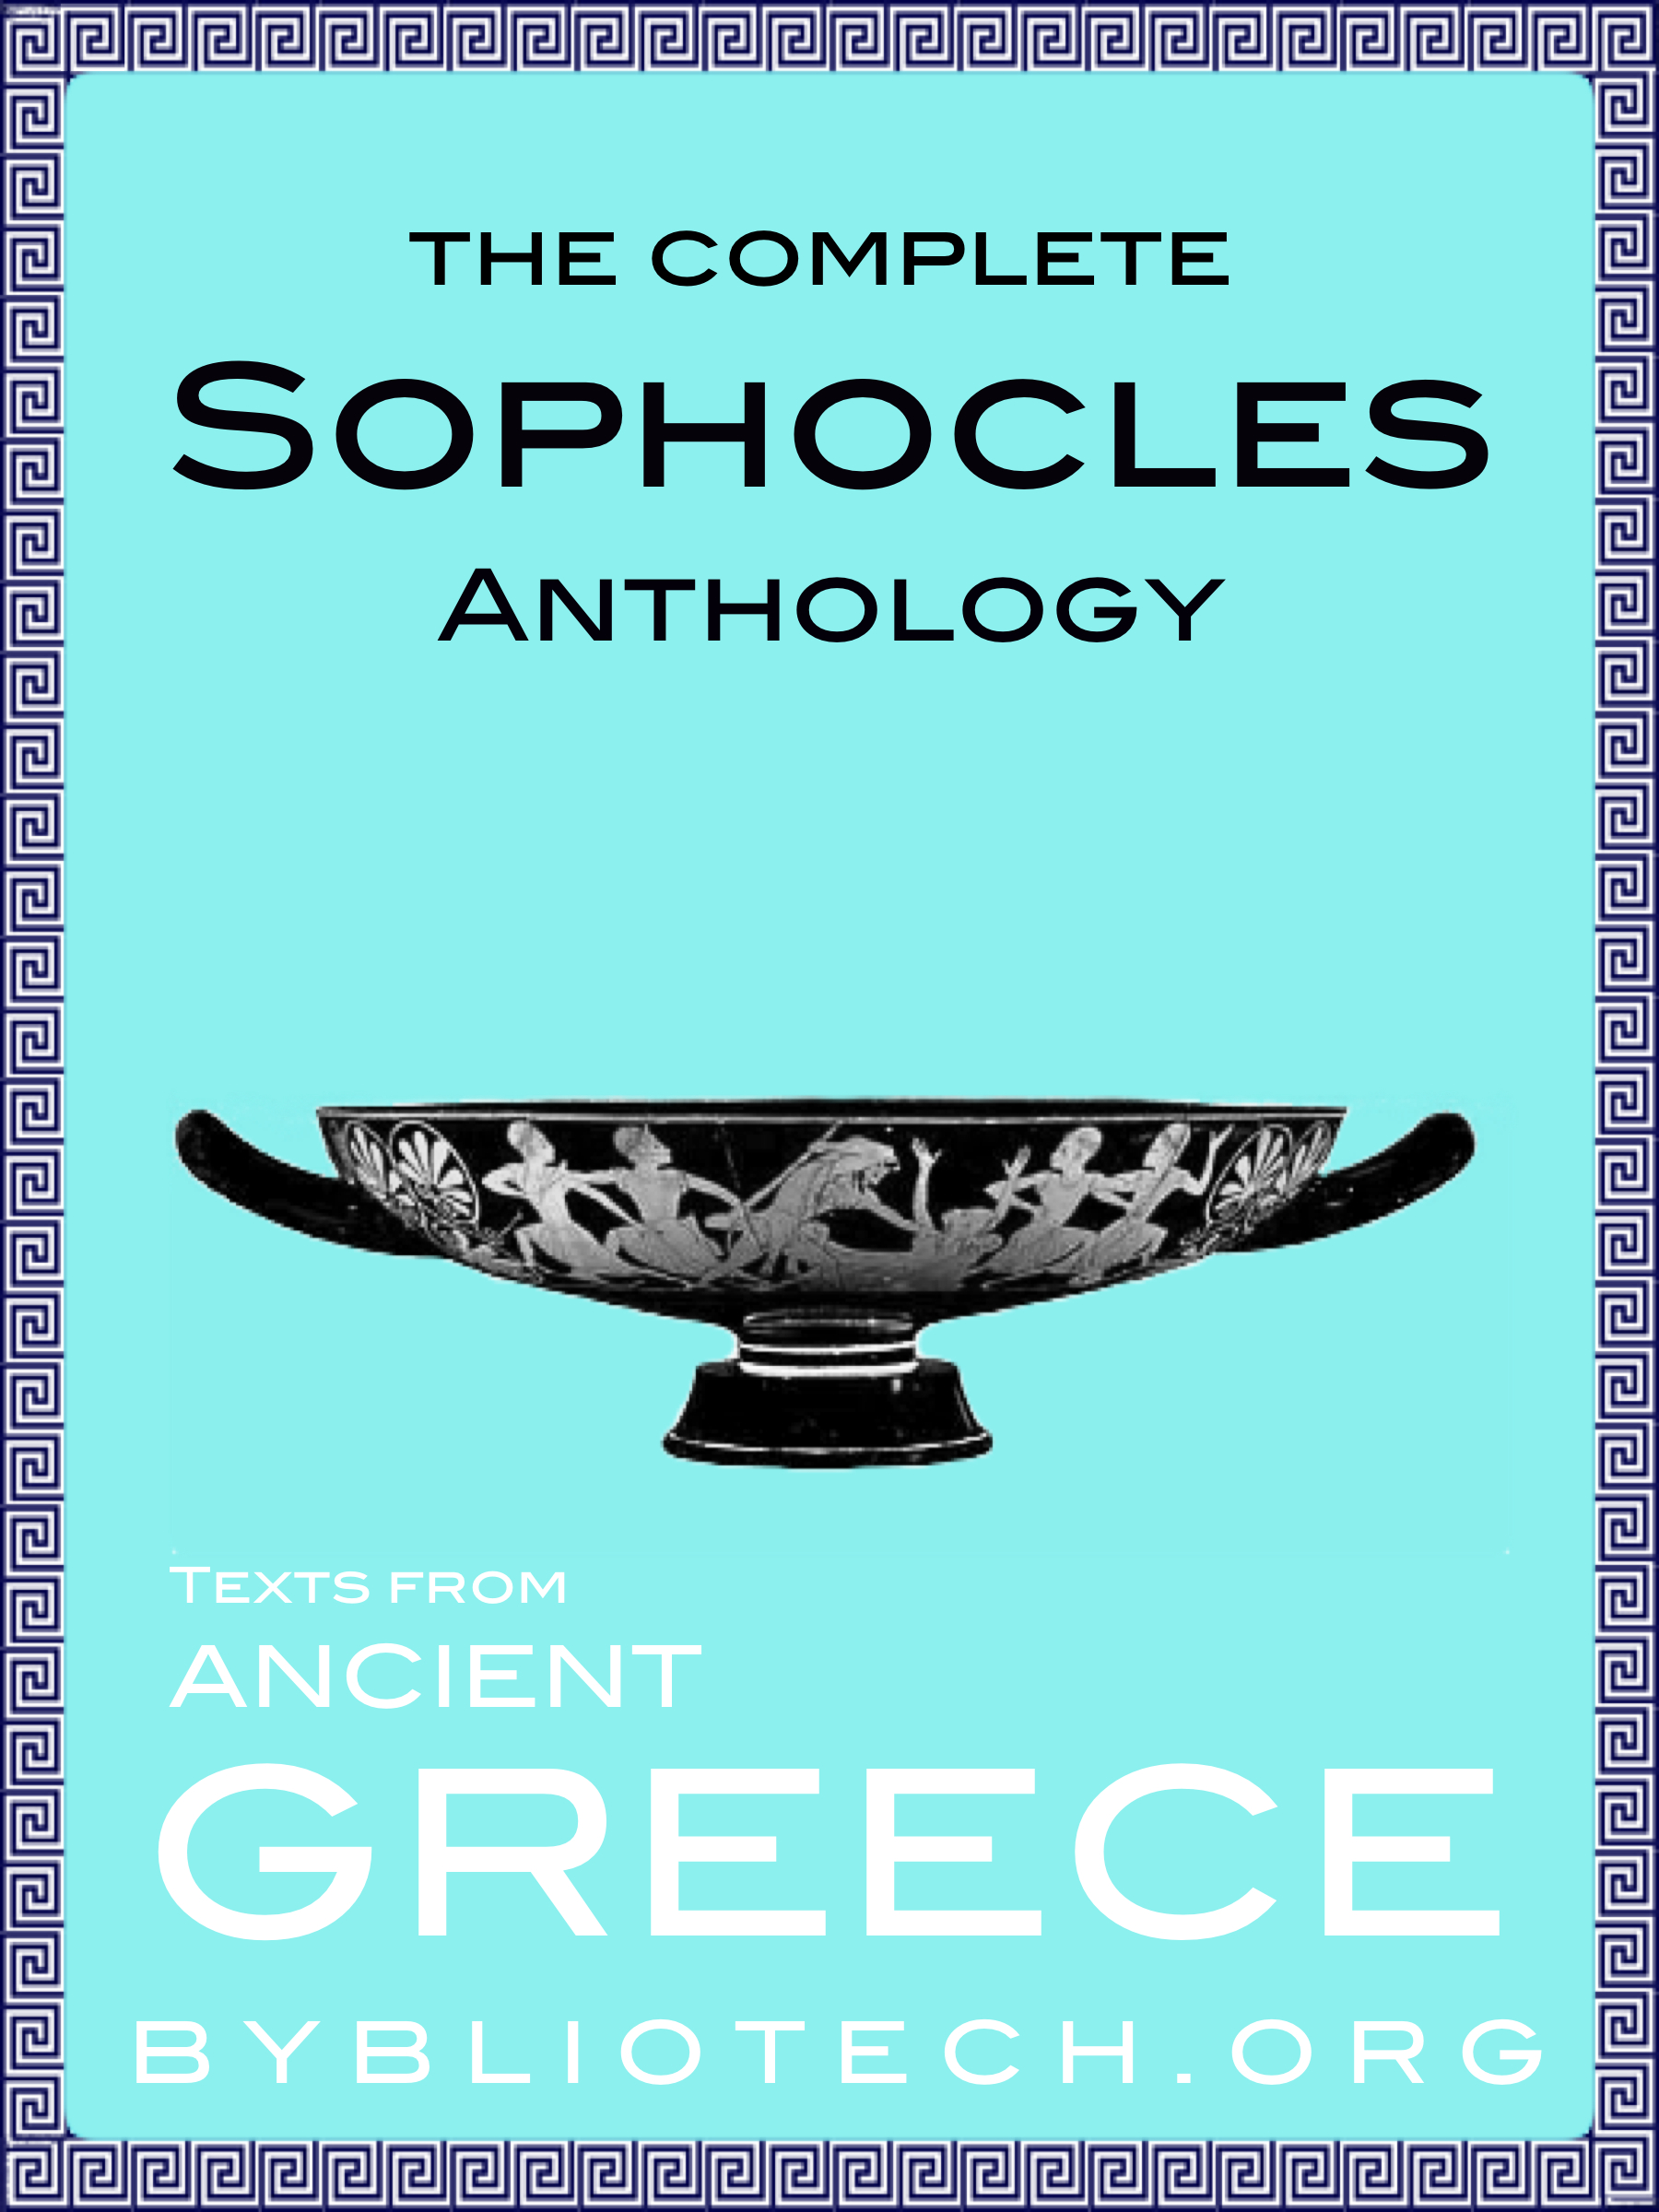 The Complete Sophocles Anthology